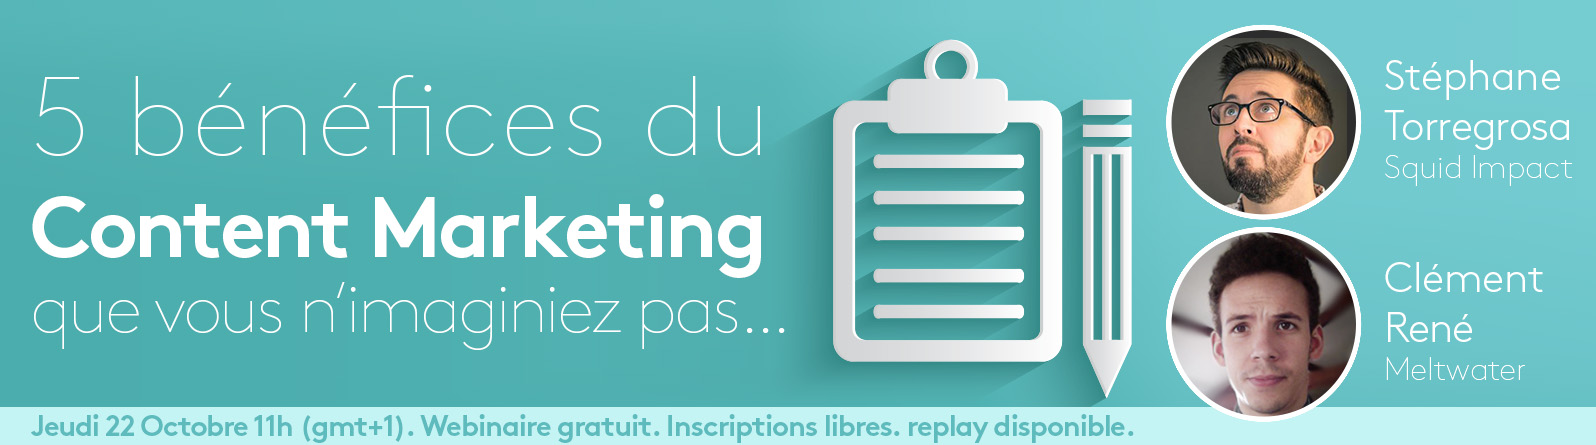 5 bénéfices insoupçonnés du Content Marketing